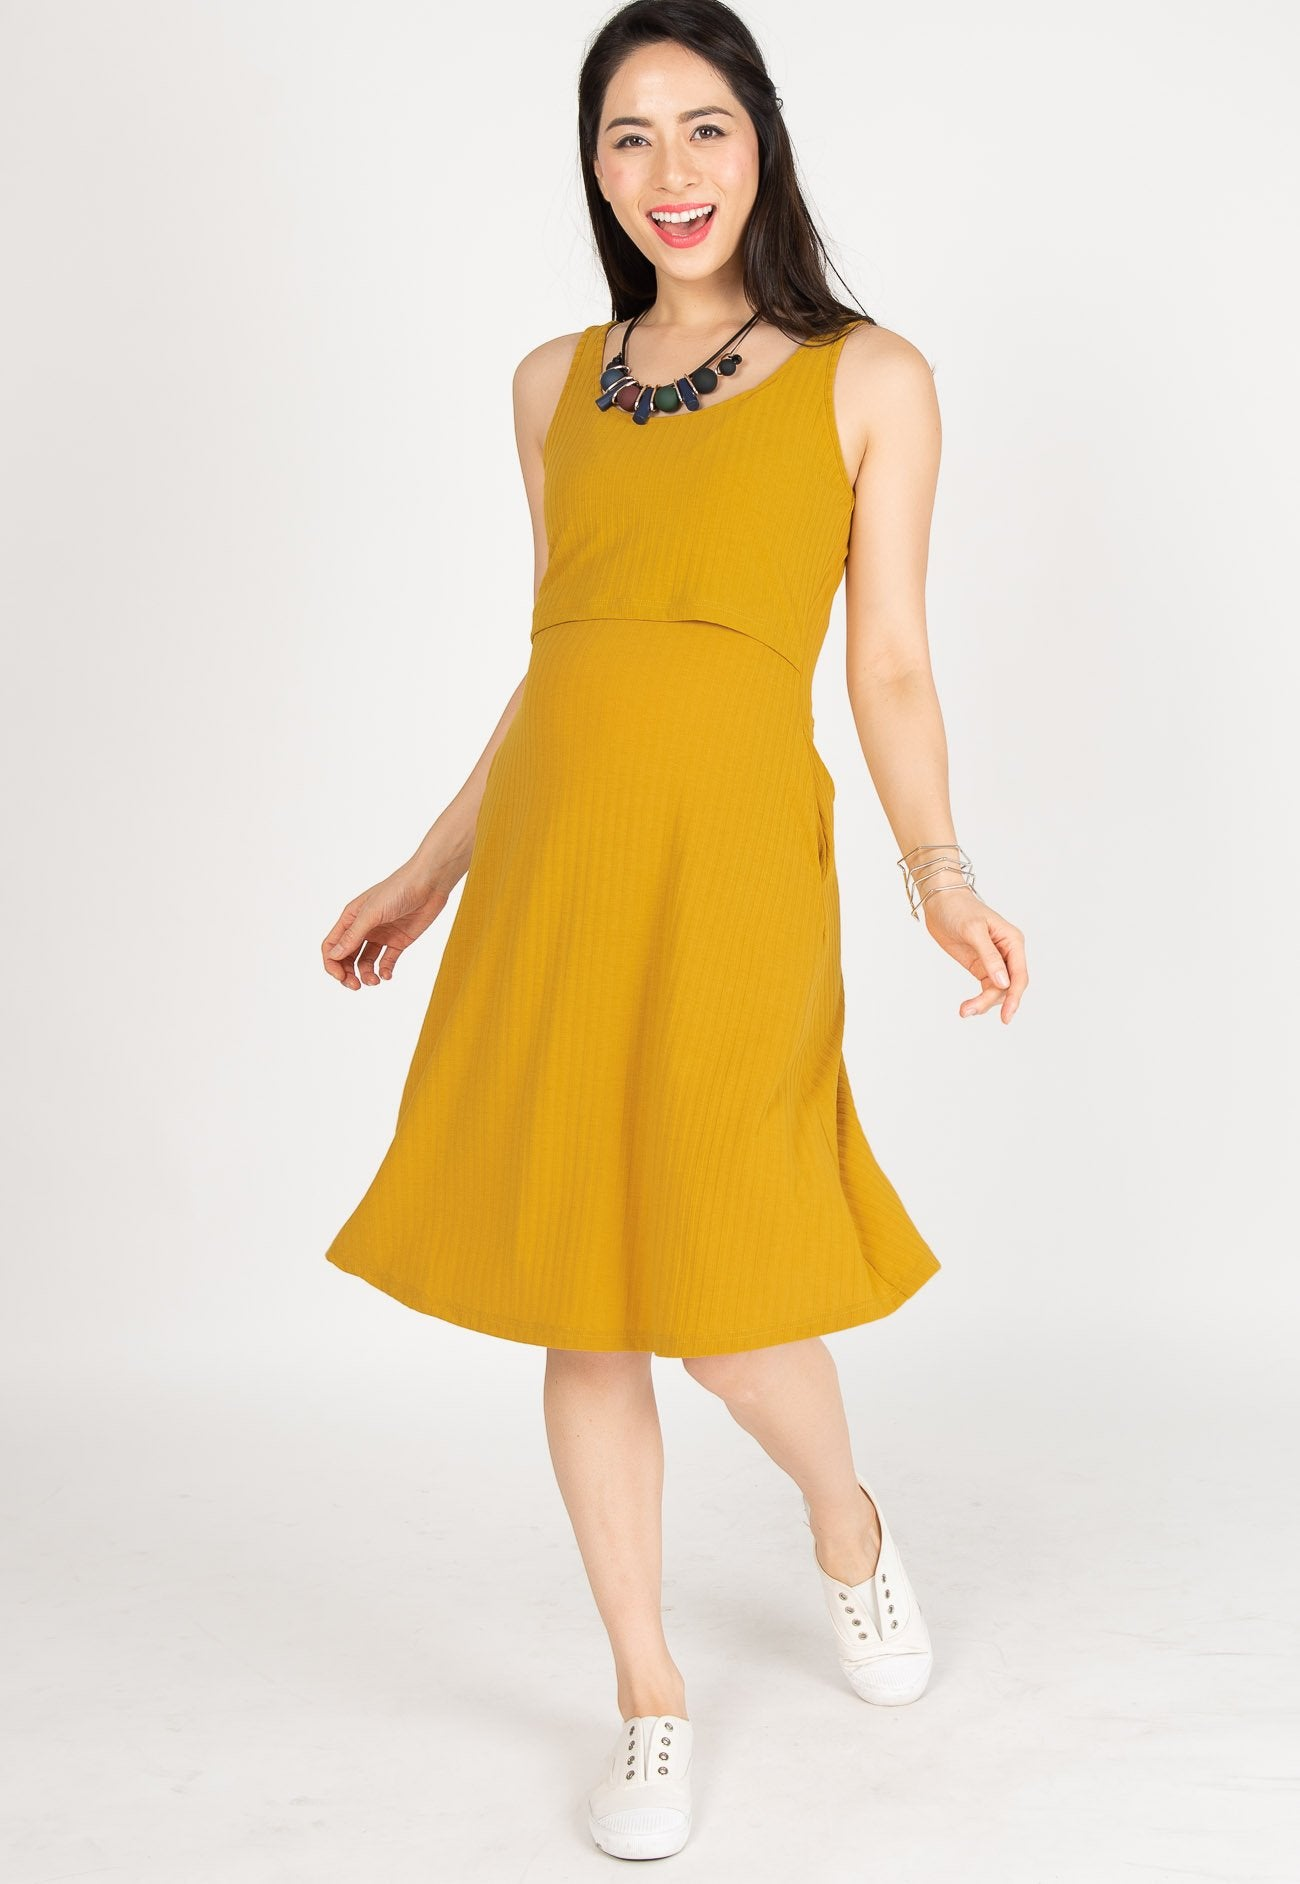 Knitted Nursing Swing Dress in Yellow  by Jump Eat Cry - Maternity and nursing wear